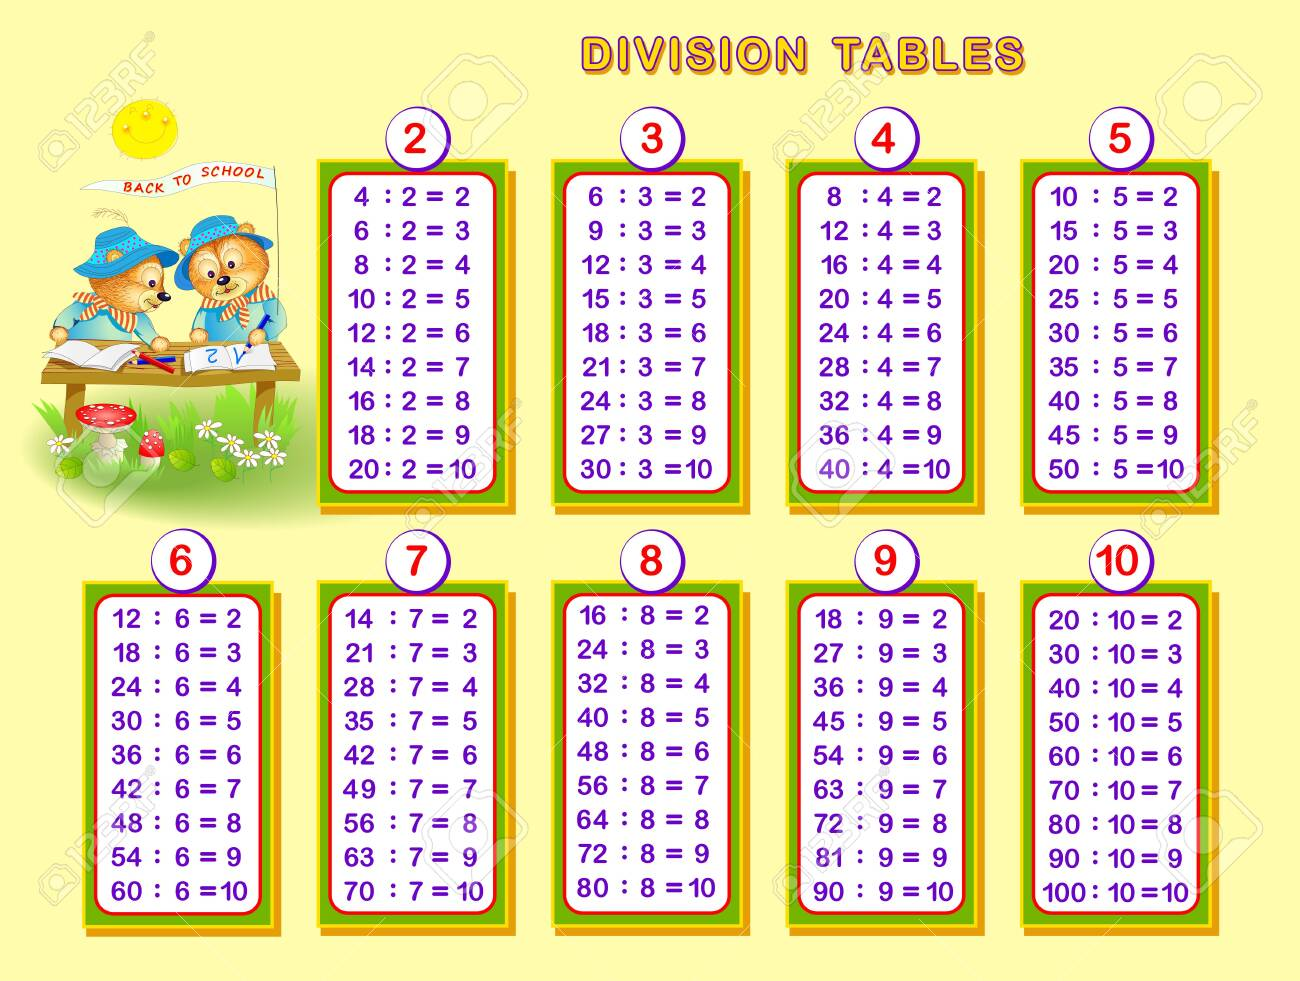 photo regarding Baby Book Printable identify Office tables for small youngsters. Insightful web page for arithmetic..